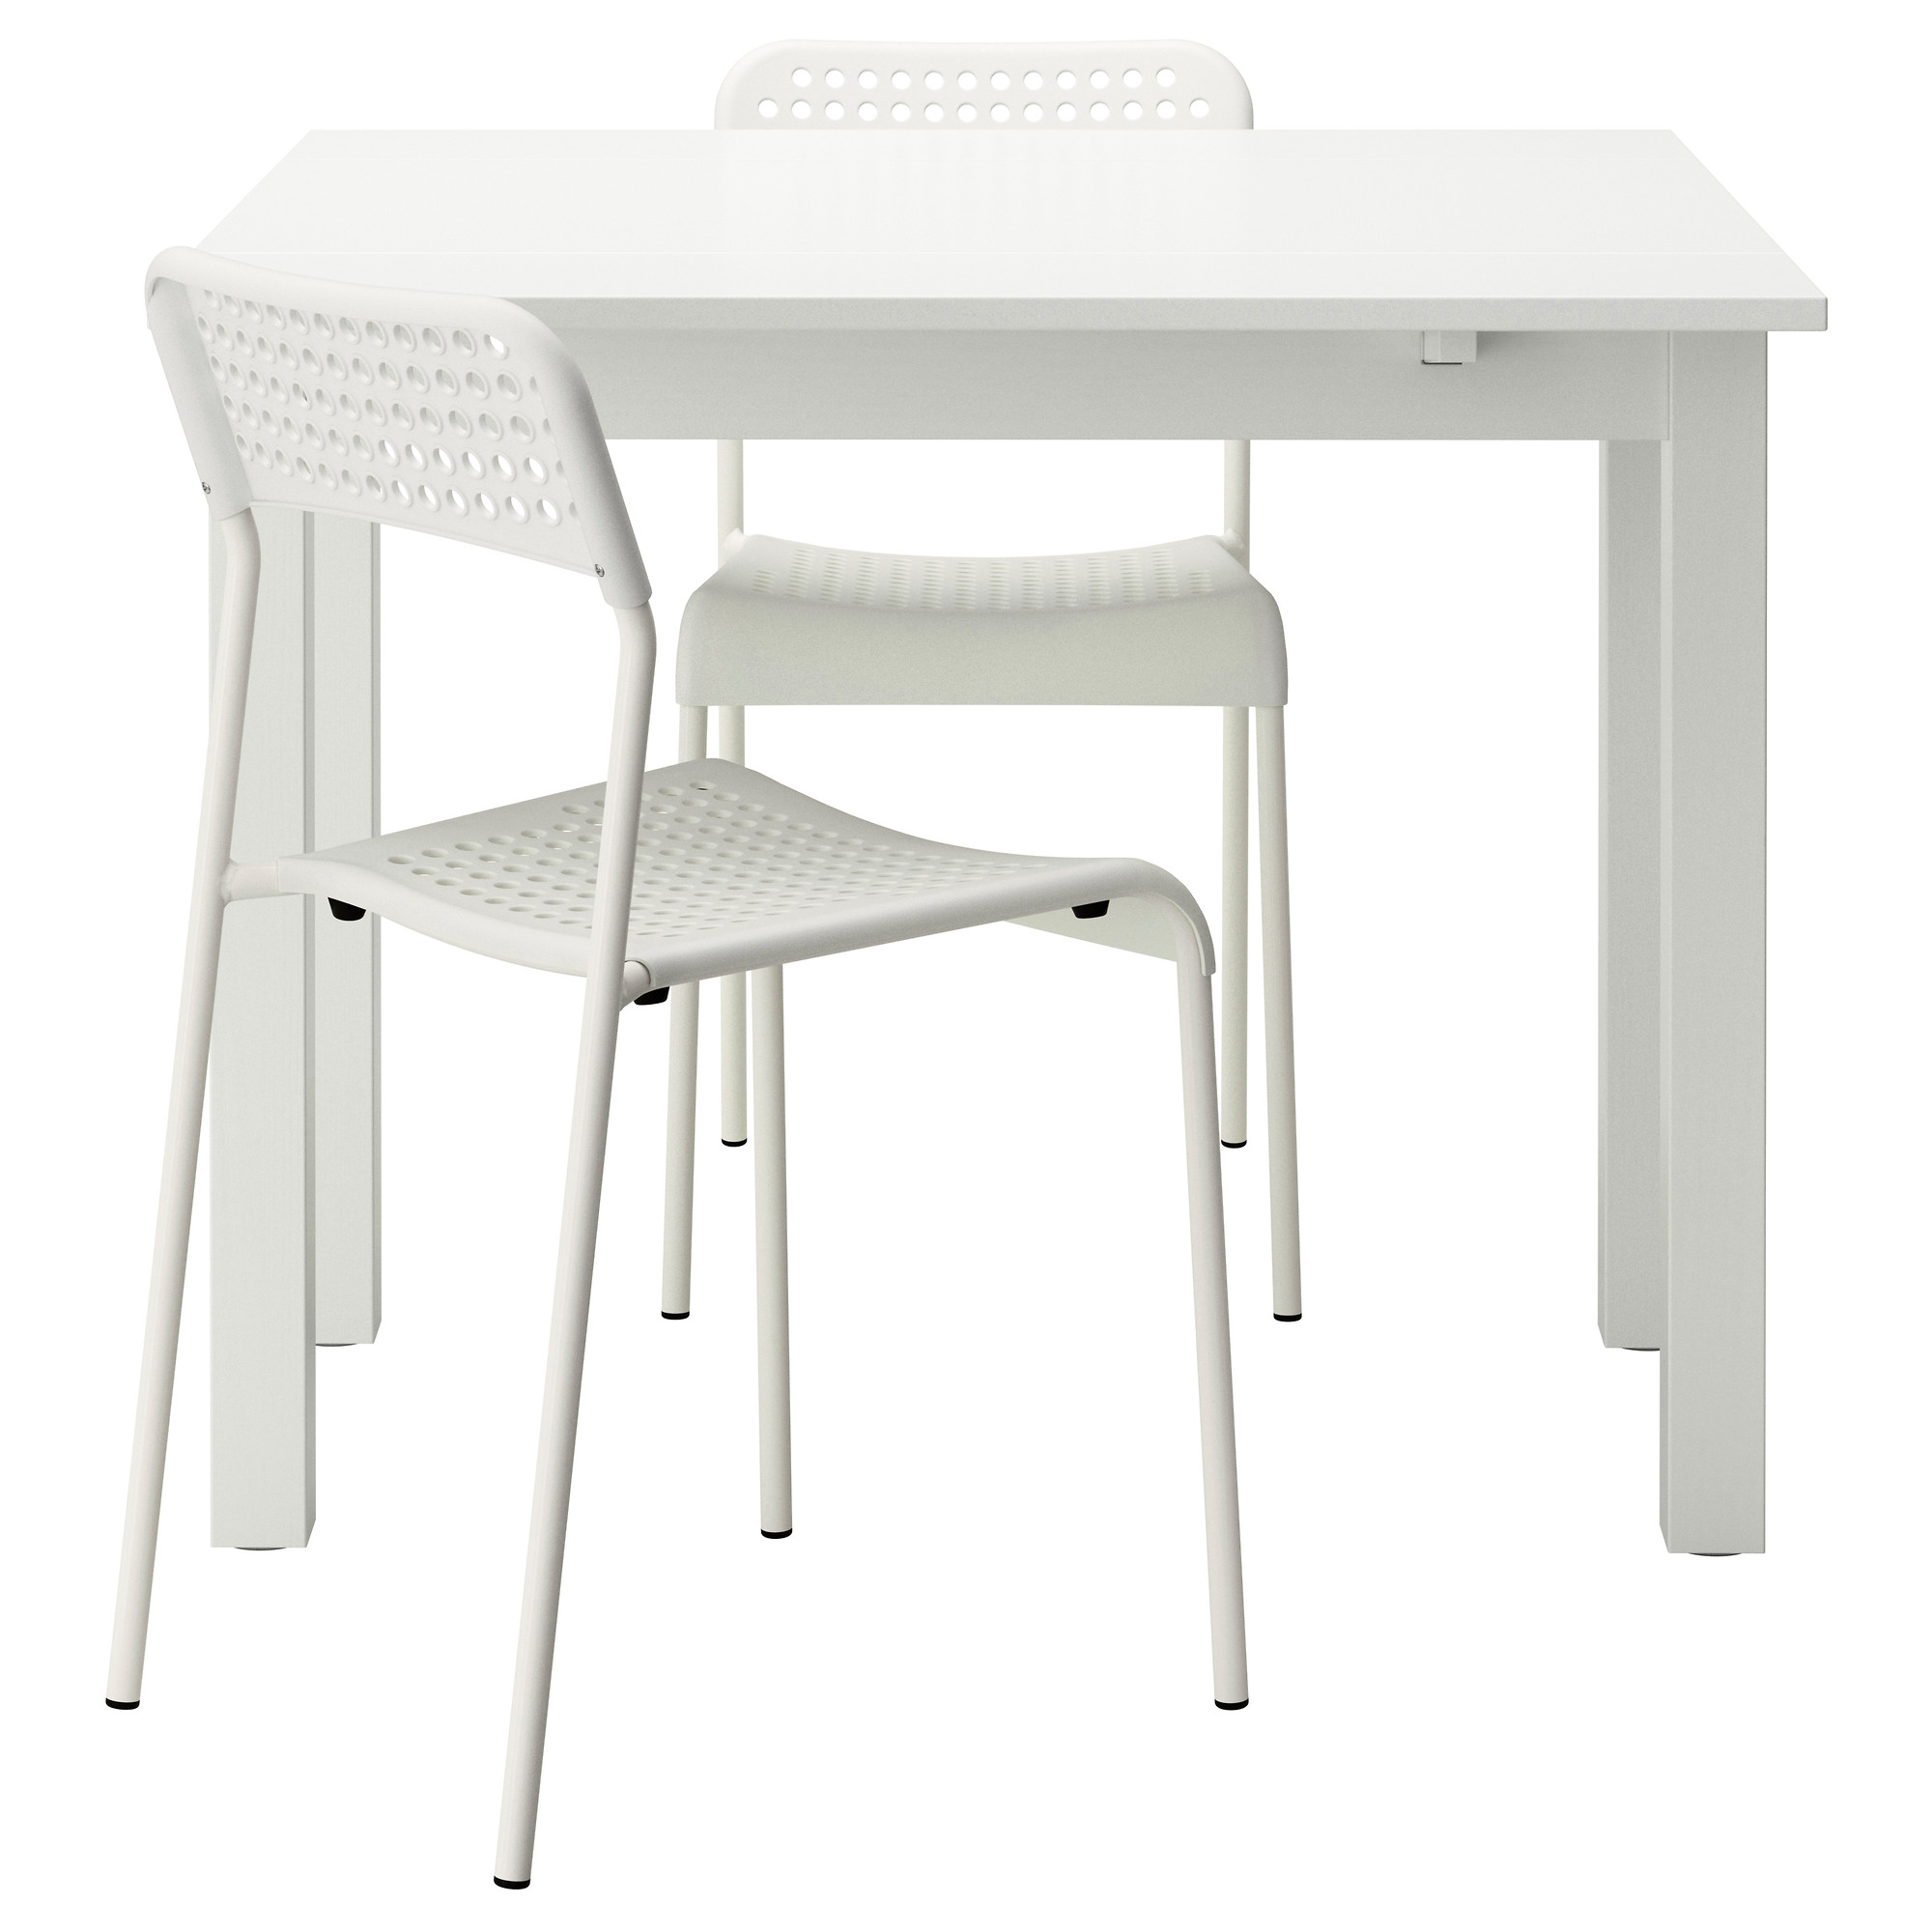 Table et chaise de cuisine ikea table chaise cuisine for But table et chaises de cuisine